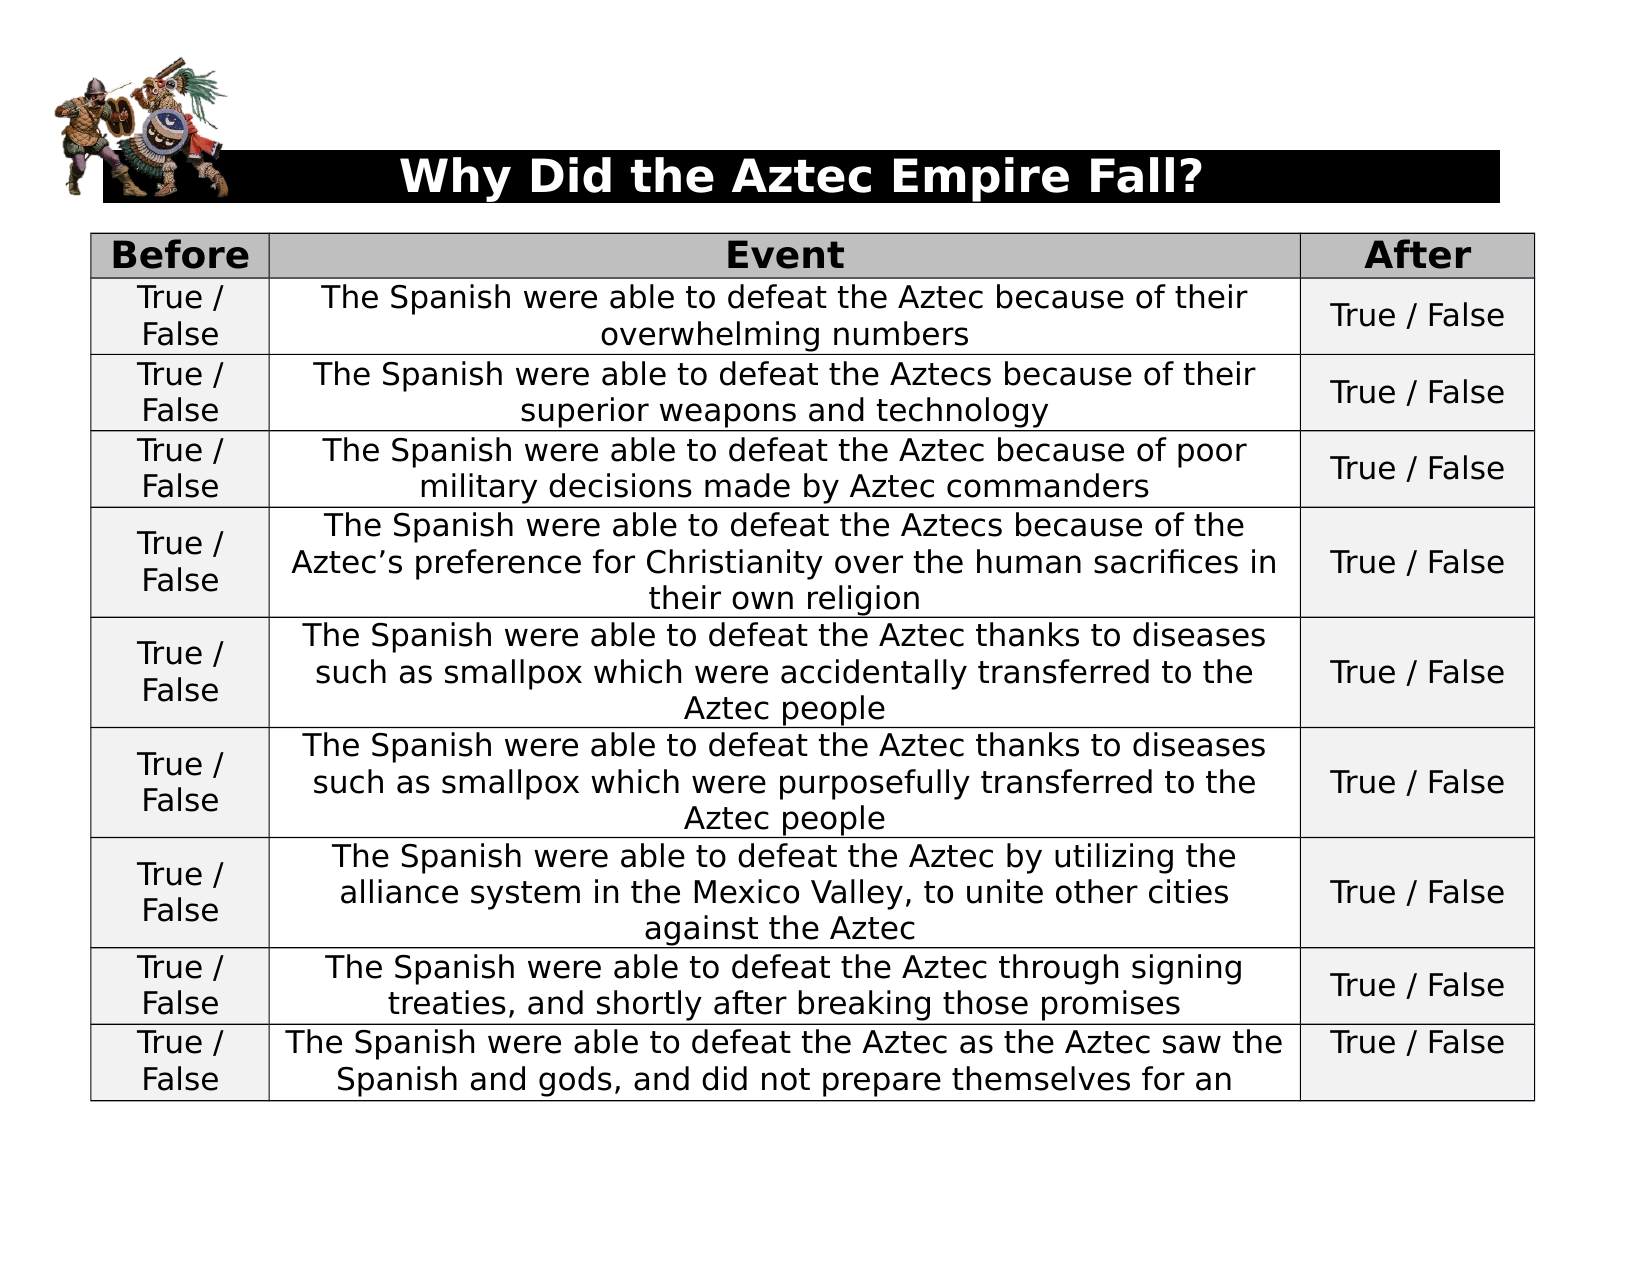 Why did the Aztec Empire Fall Anticipation Guide Resource Preview